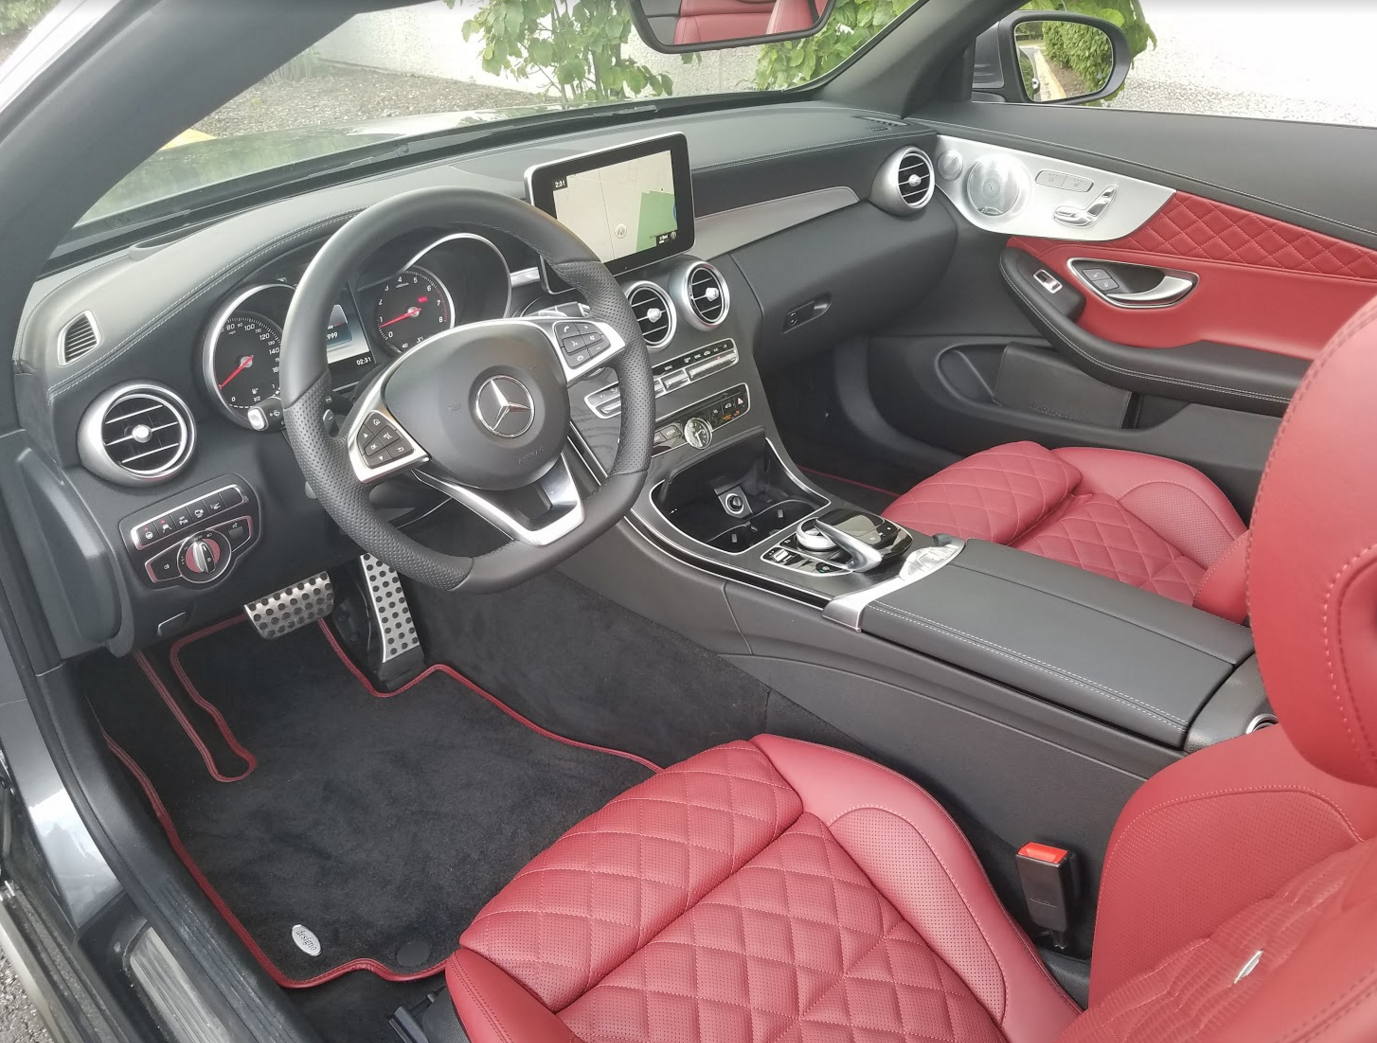 2017 mercedes benz c300 awd cabriolet the daily drive for Mercedes benz c300 red interior